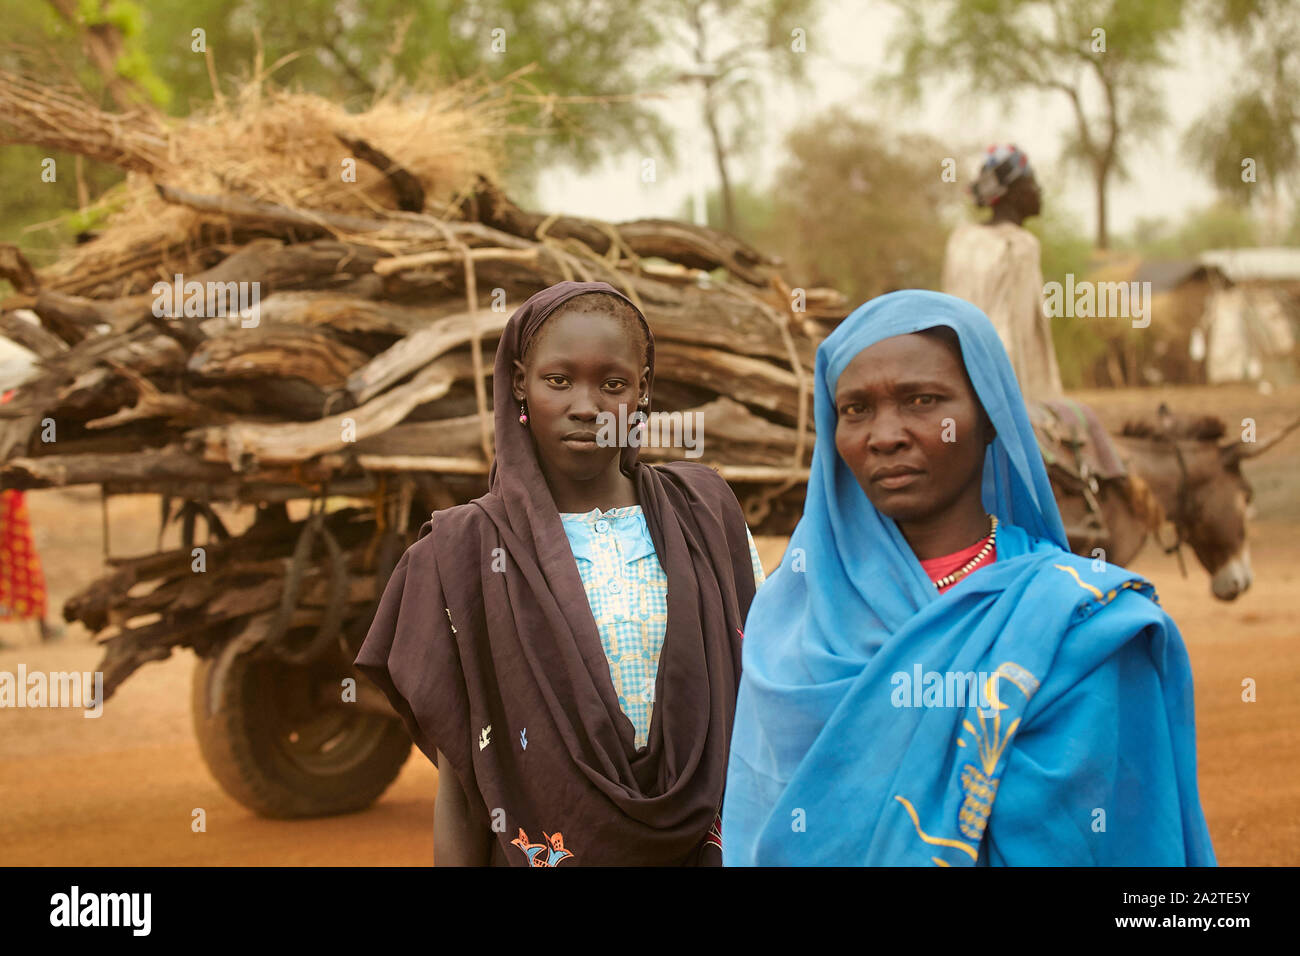 South Sudan Maban Refugee camp two woman with a car with firewood  photo Jaco Klamer 16-03-2016 Stock Photo